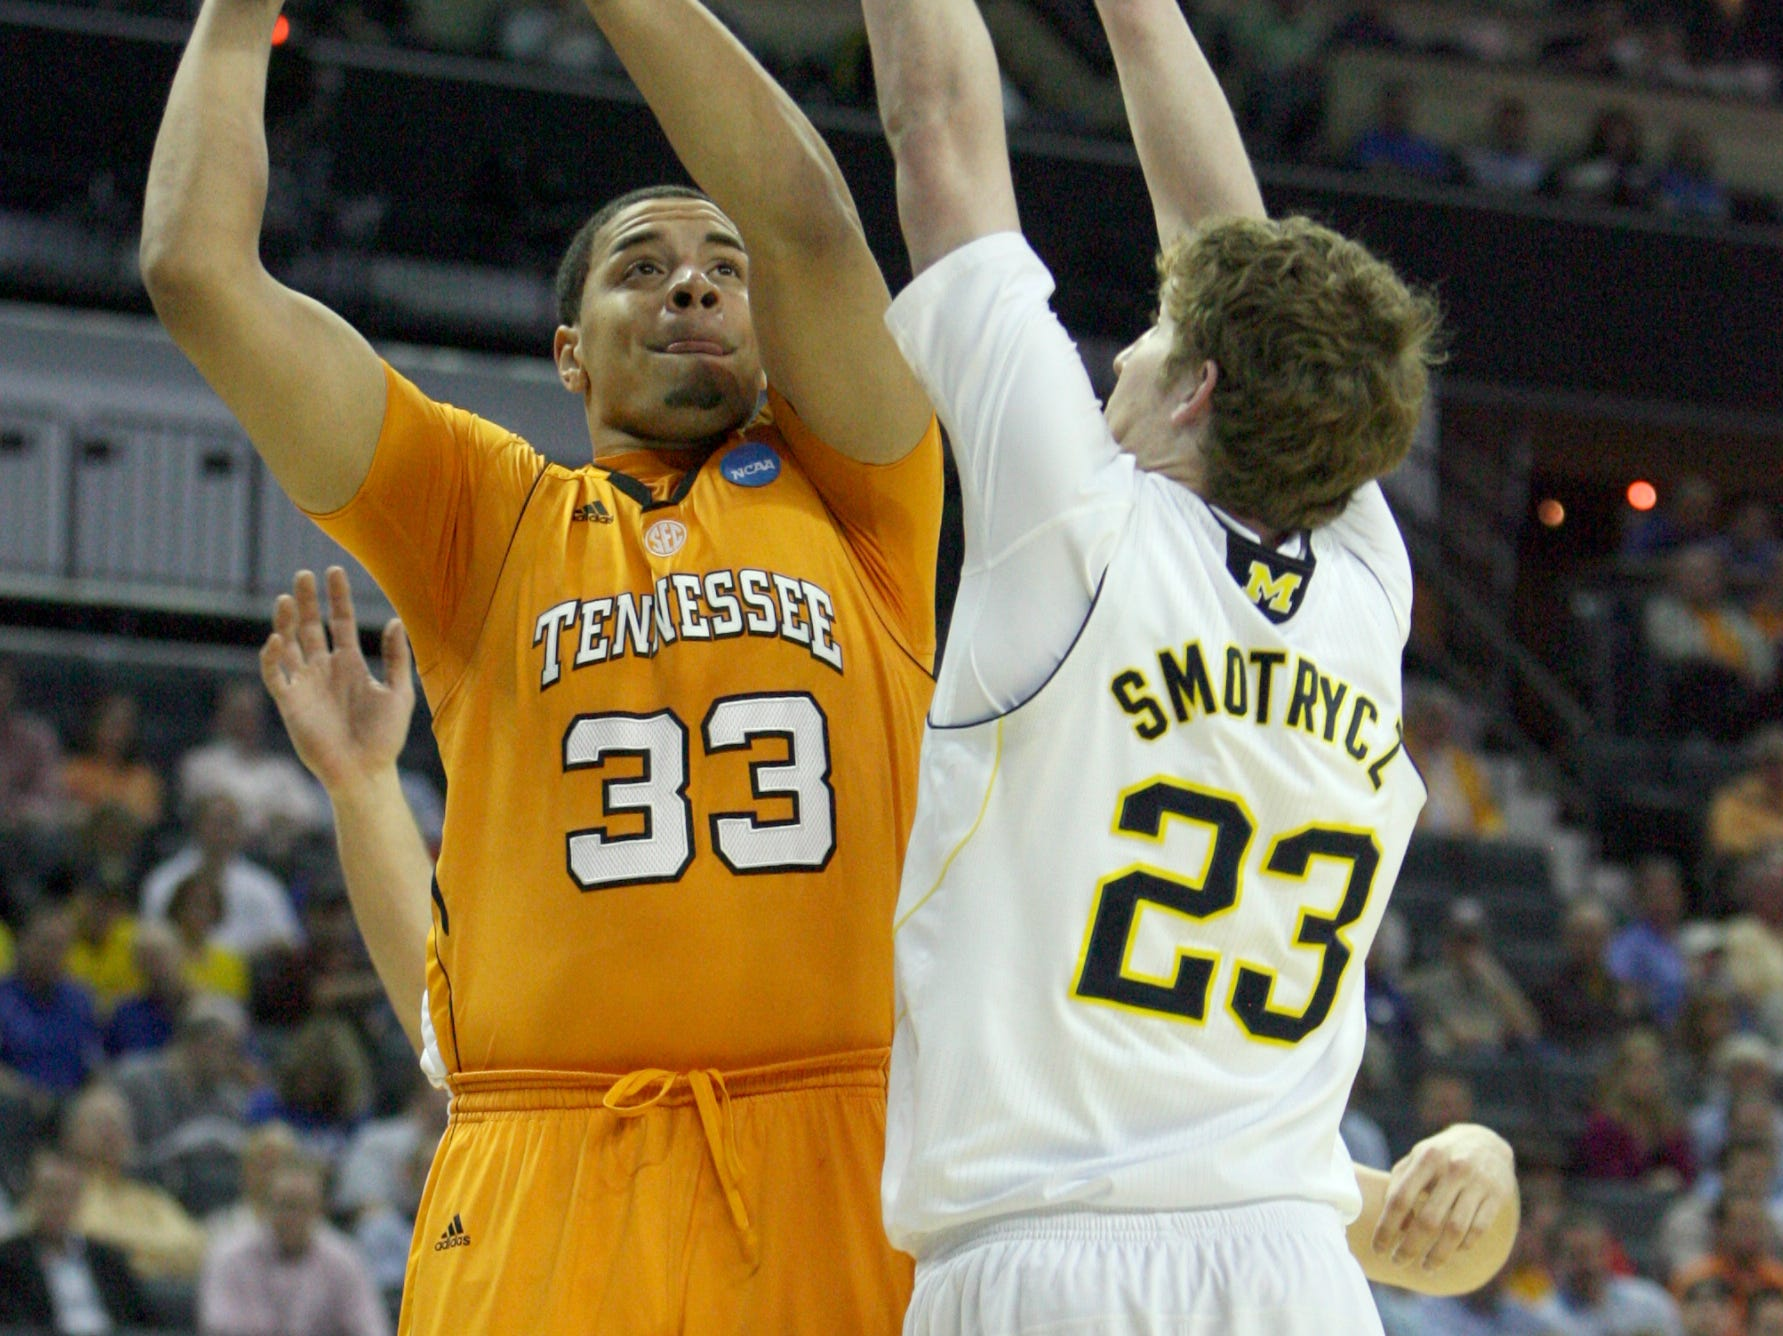 Tennessee center Brian Williams shoots the ball as Michigan forward Evan Smotrycz defends during the second round of the NCAA Tournament at Time Warner Cable Arena in Charlotte, N.C. Friday, March 18, 2011.  Williams scored two points for the Vols during their 75-45 loss to the Wolverines.